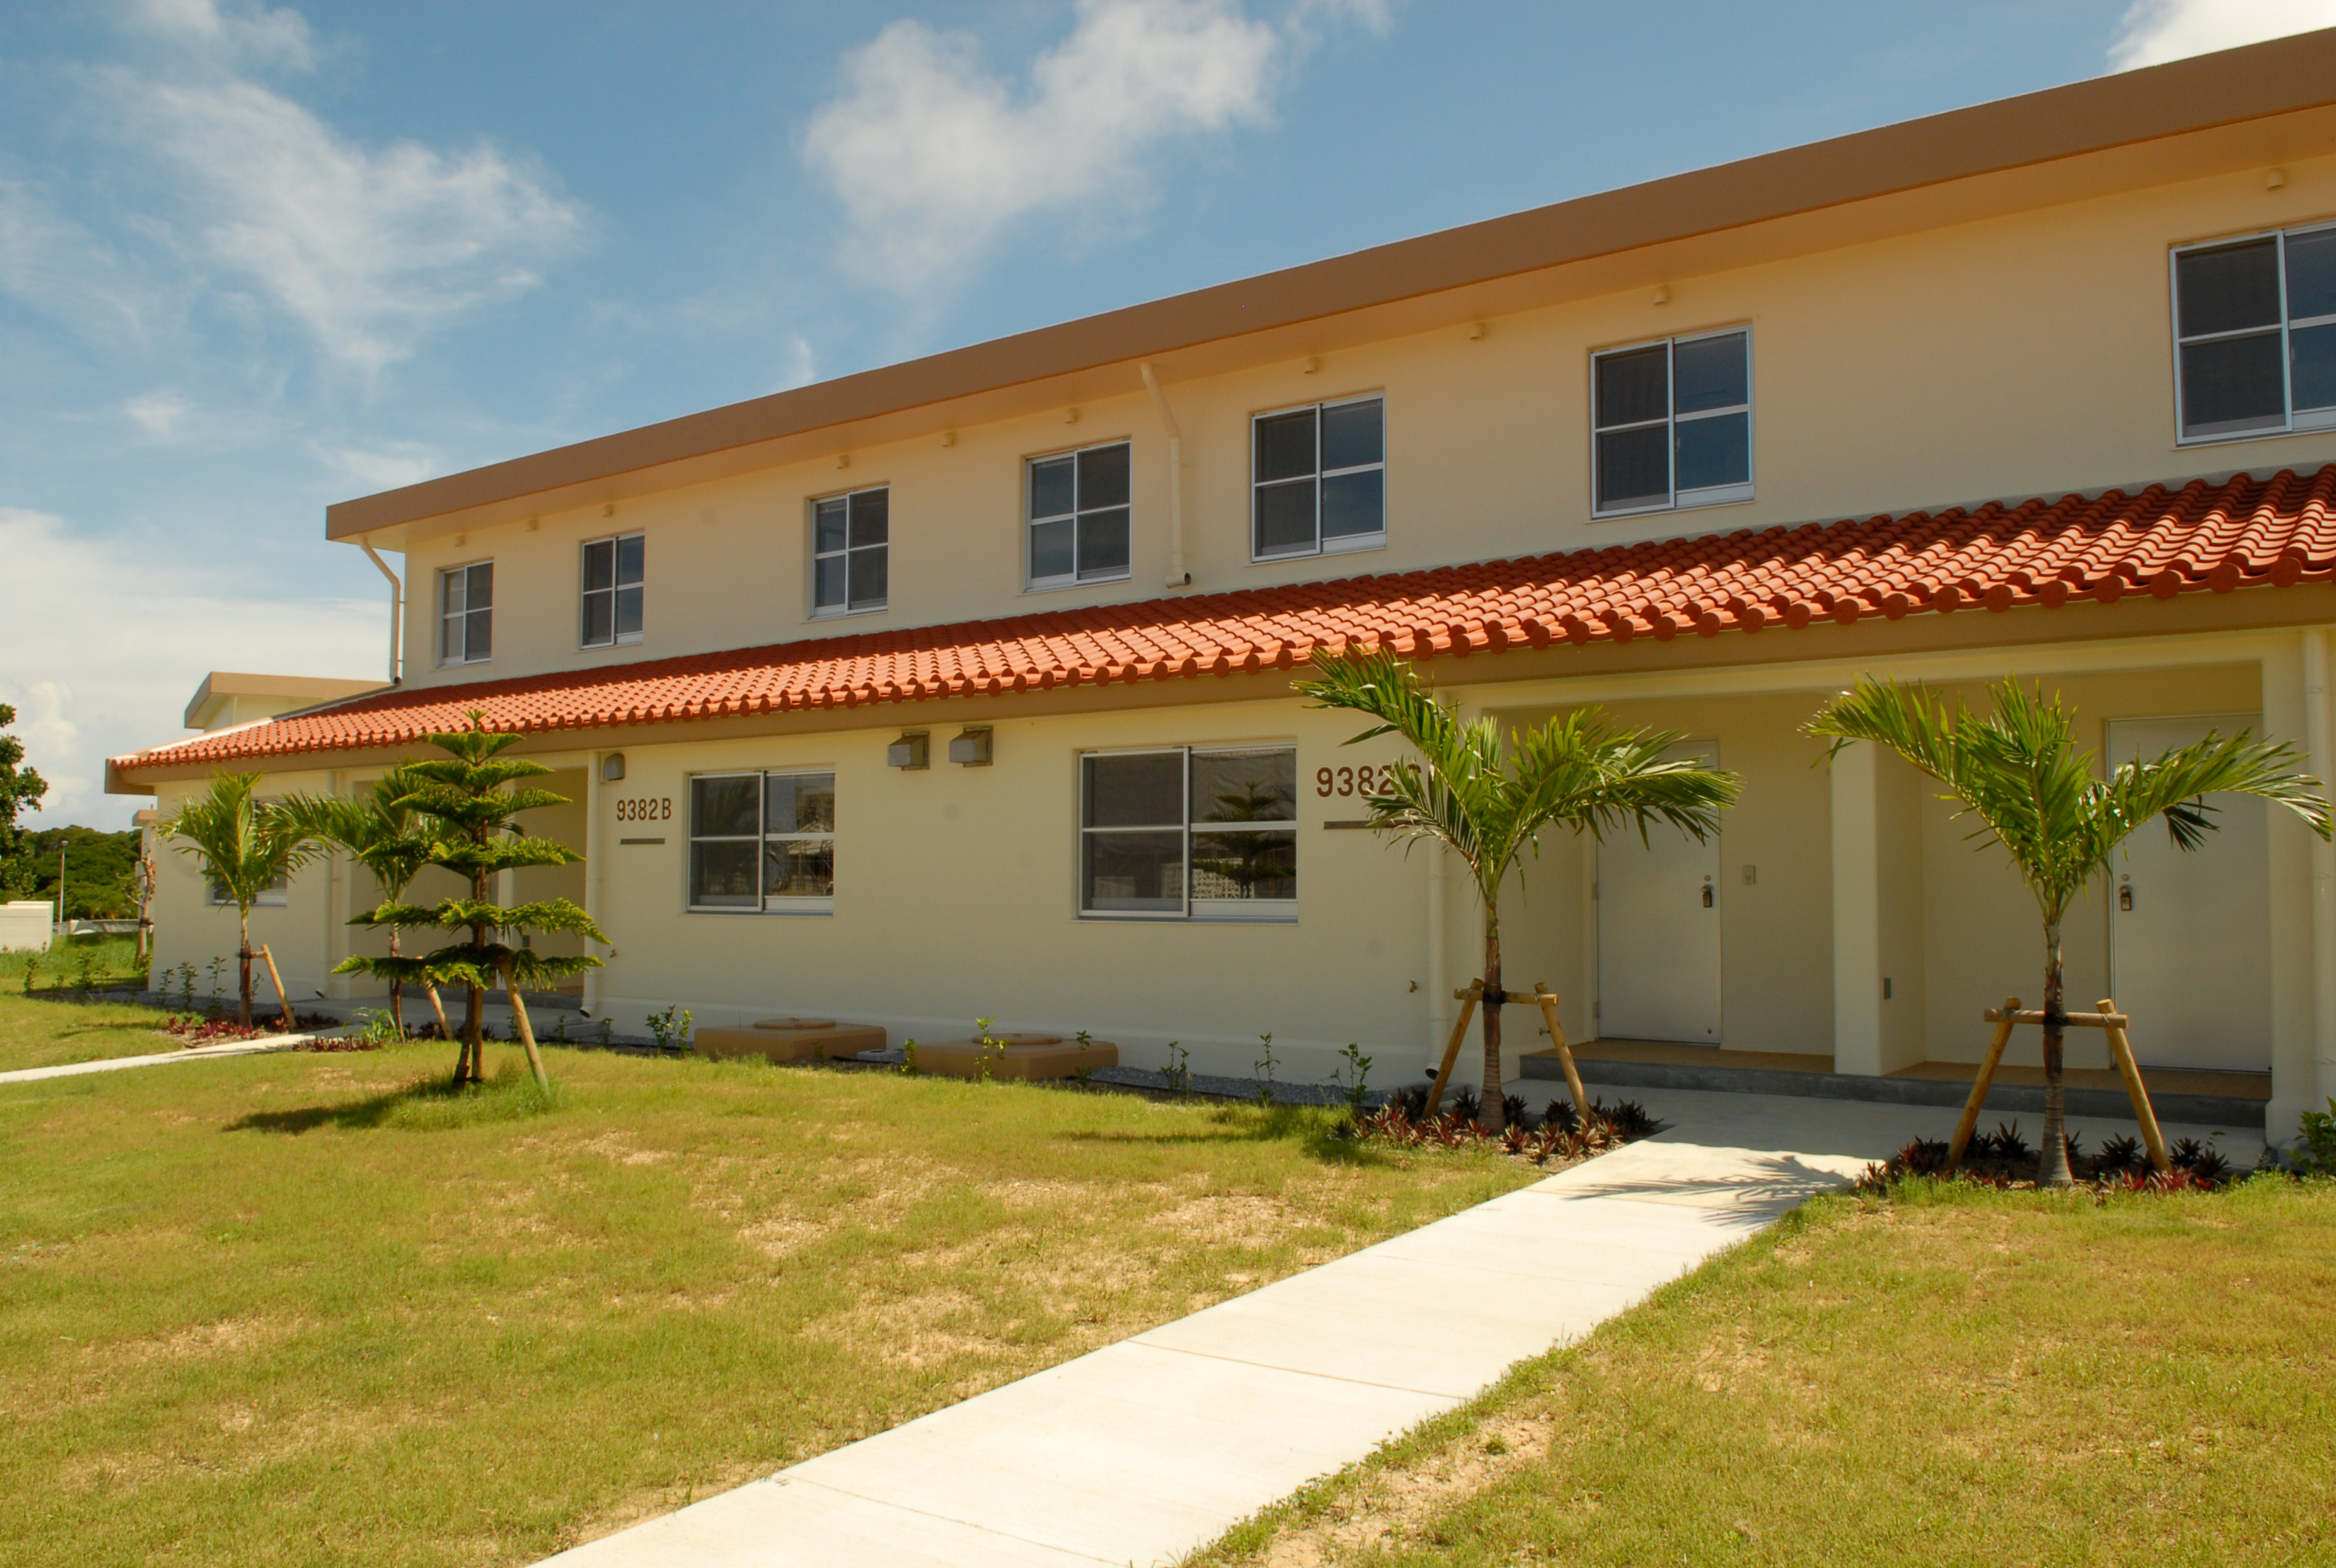 Okinawa Housing Has Come A Long Way; Even More Is On The